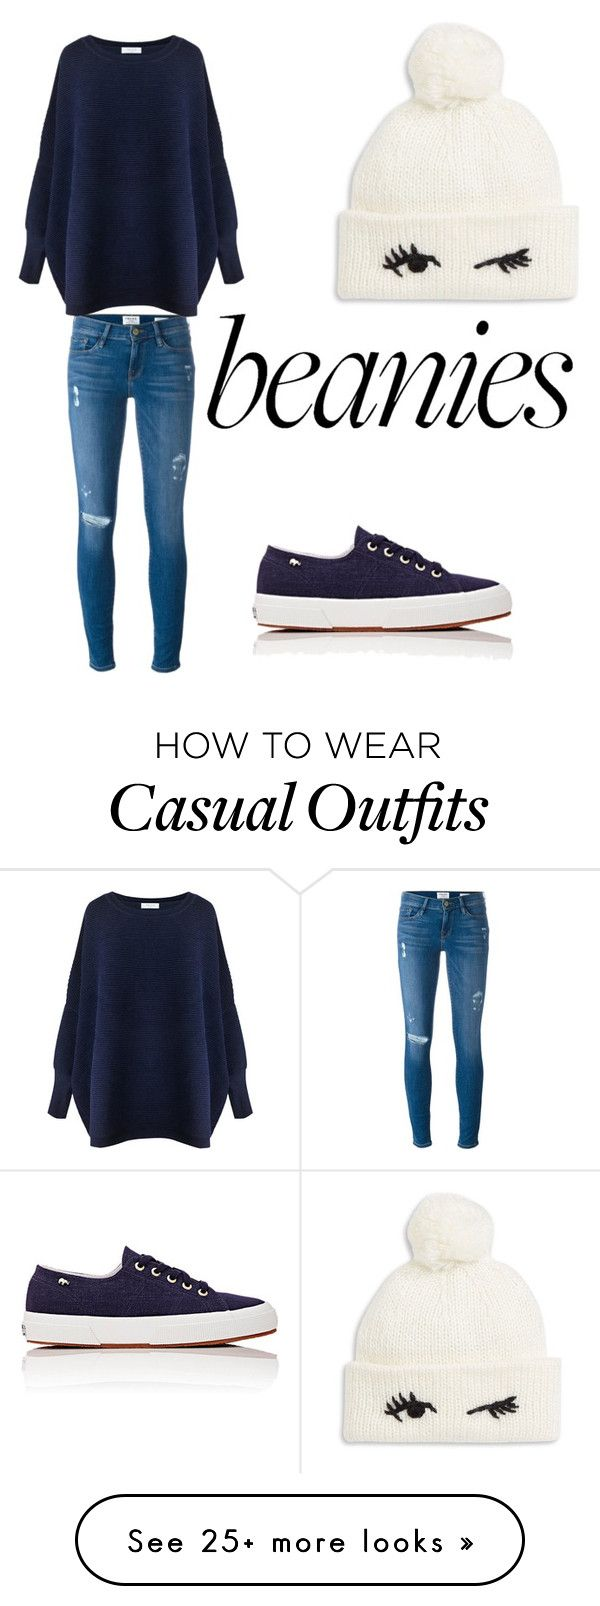 """""""#cute#casuals#beanies"""" by anya2410 on Polyvore featuring Frame Denim, Paisie, Kate Spade and Superga"""